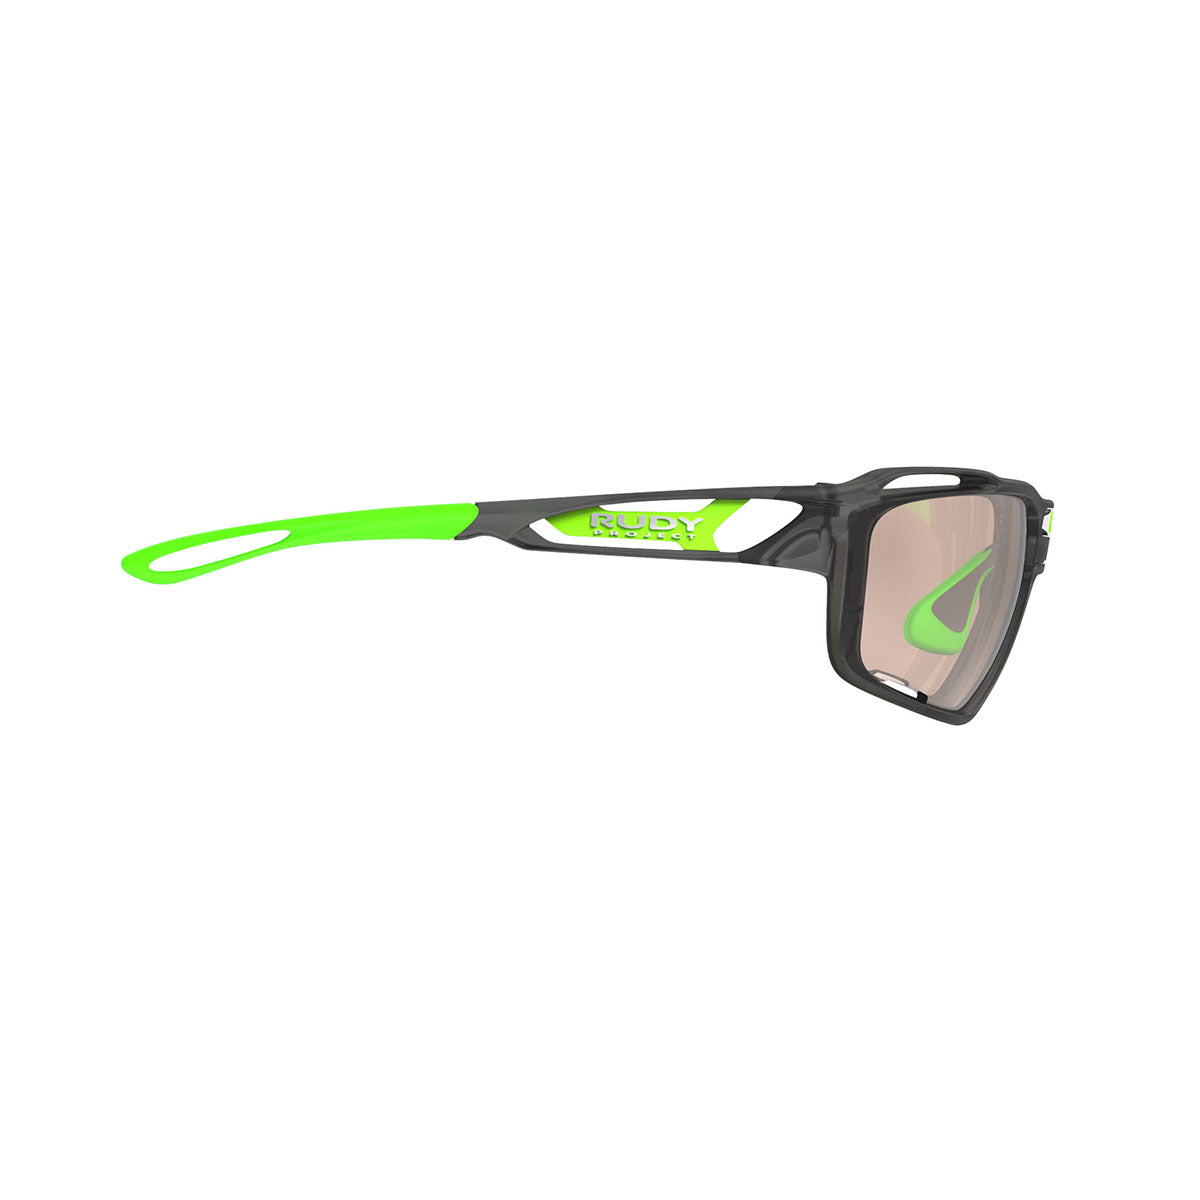 Rudy Project - Sintryx - frame color: Ice Graphite Matte - lens color: ImpactX-2 Photochromic Clear to Laser Brown - Bumper Color:  - photo angle: Side Variant Hover Image